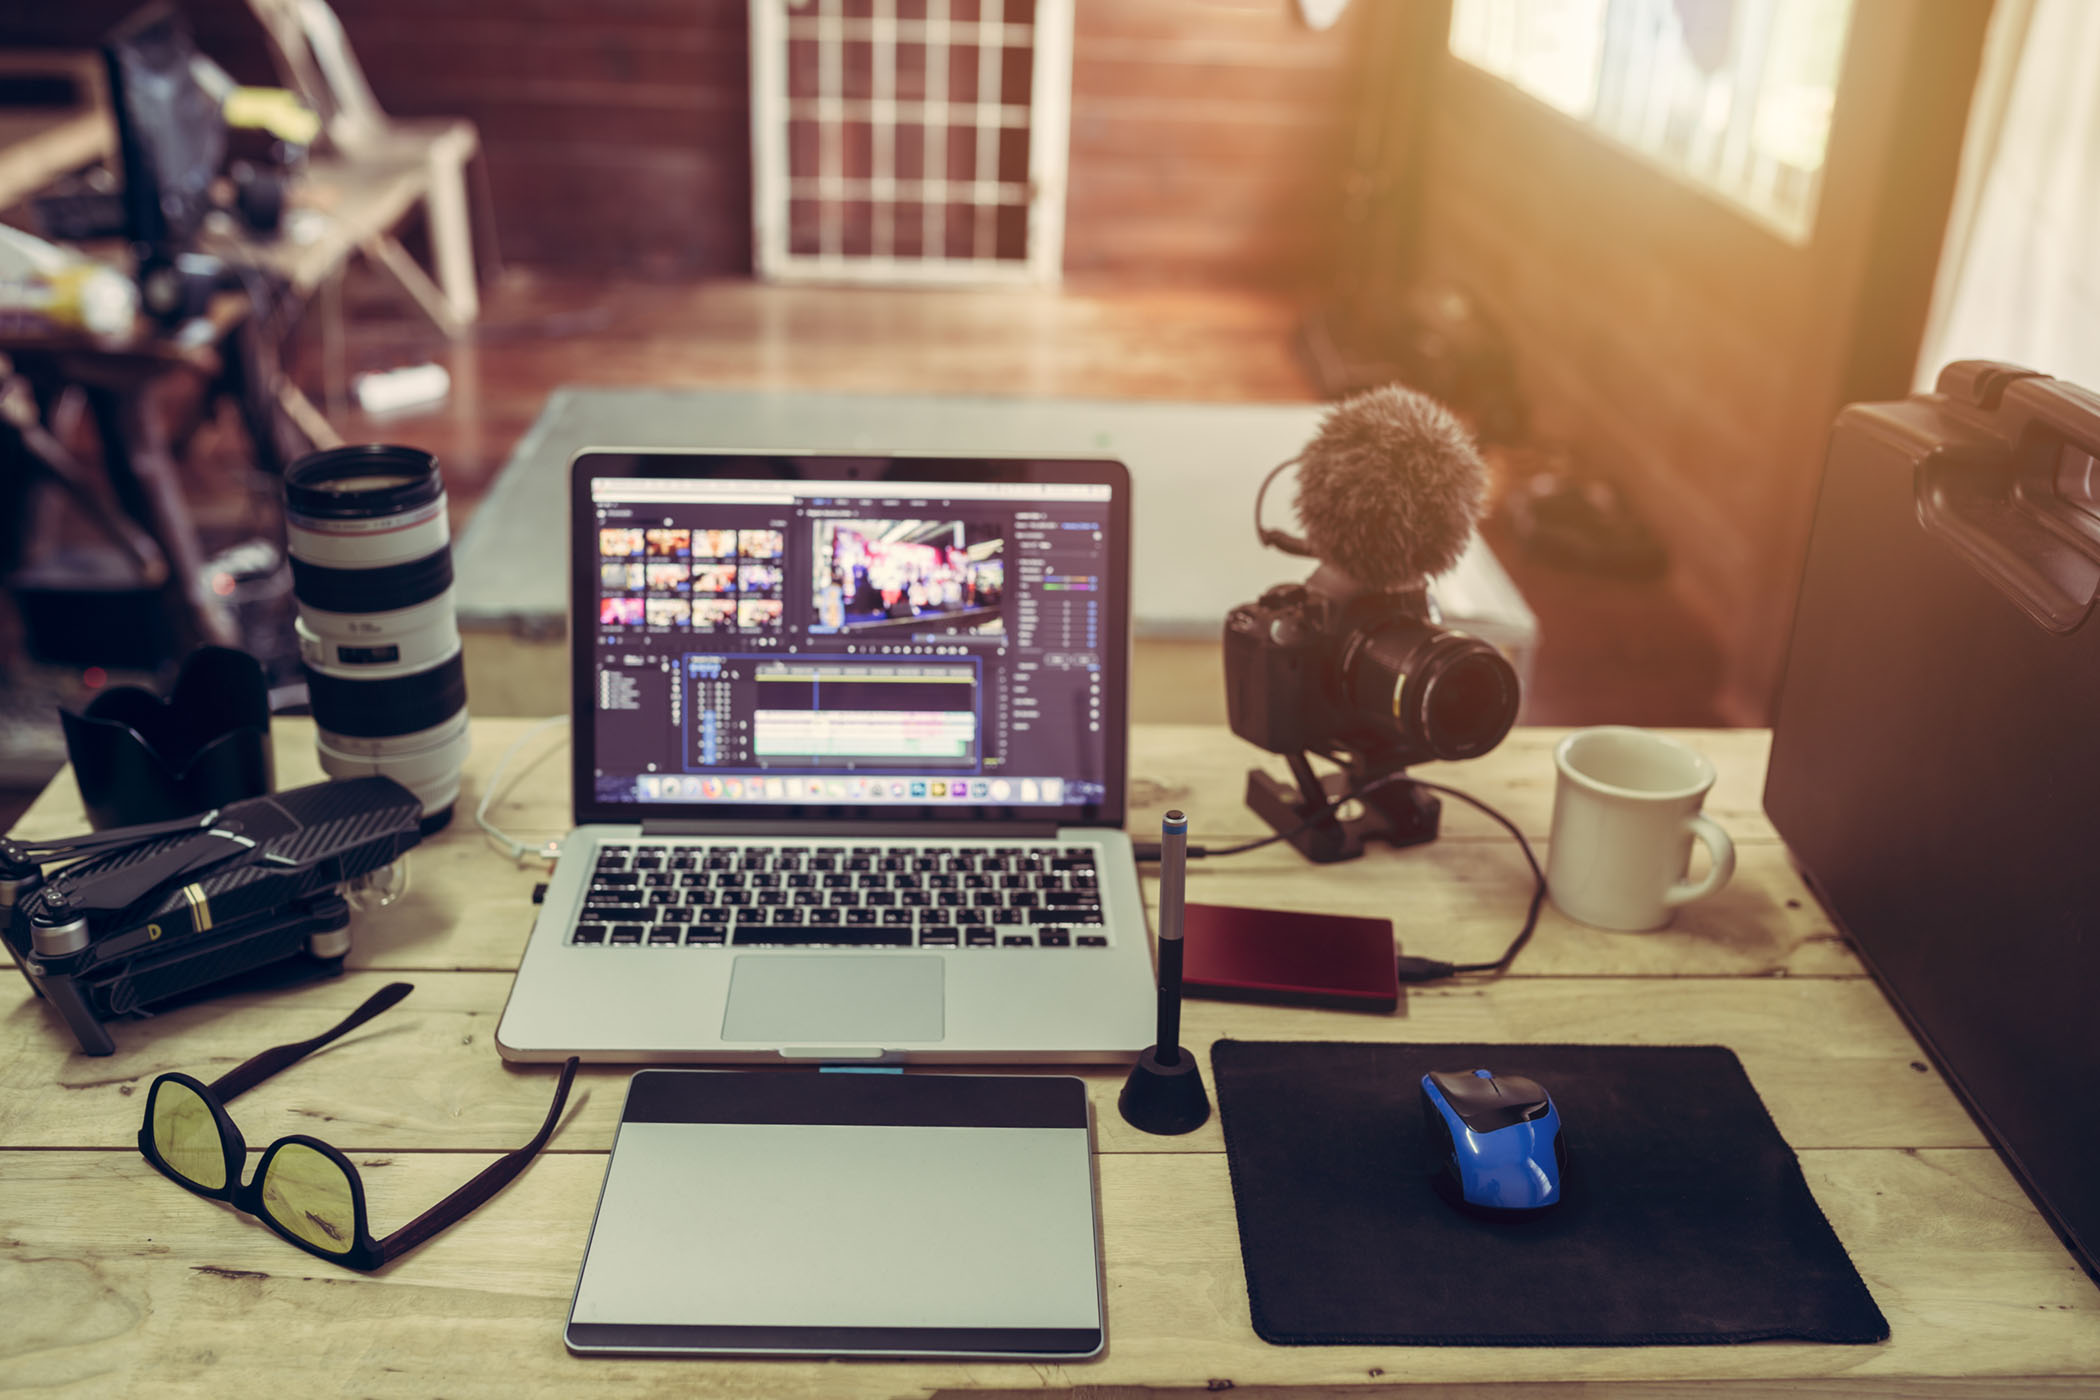 The laptop Camera and drone gear for editor man or freelance Vlo